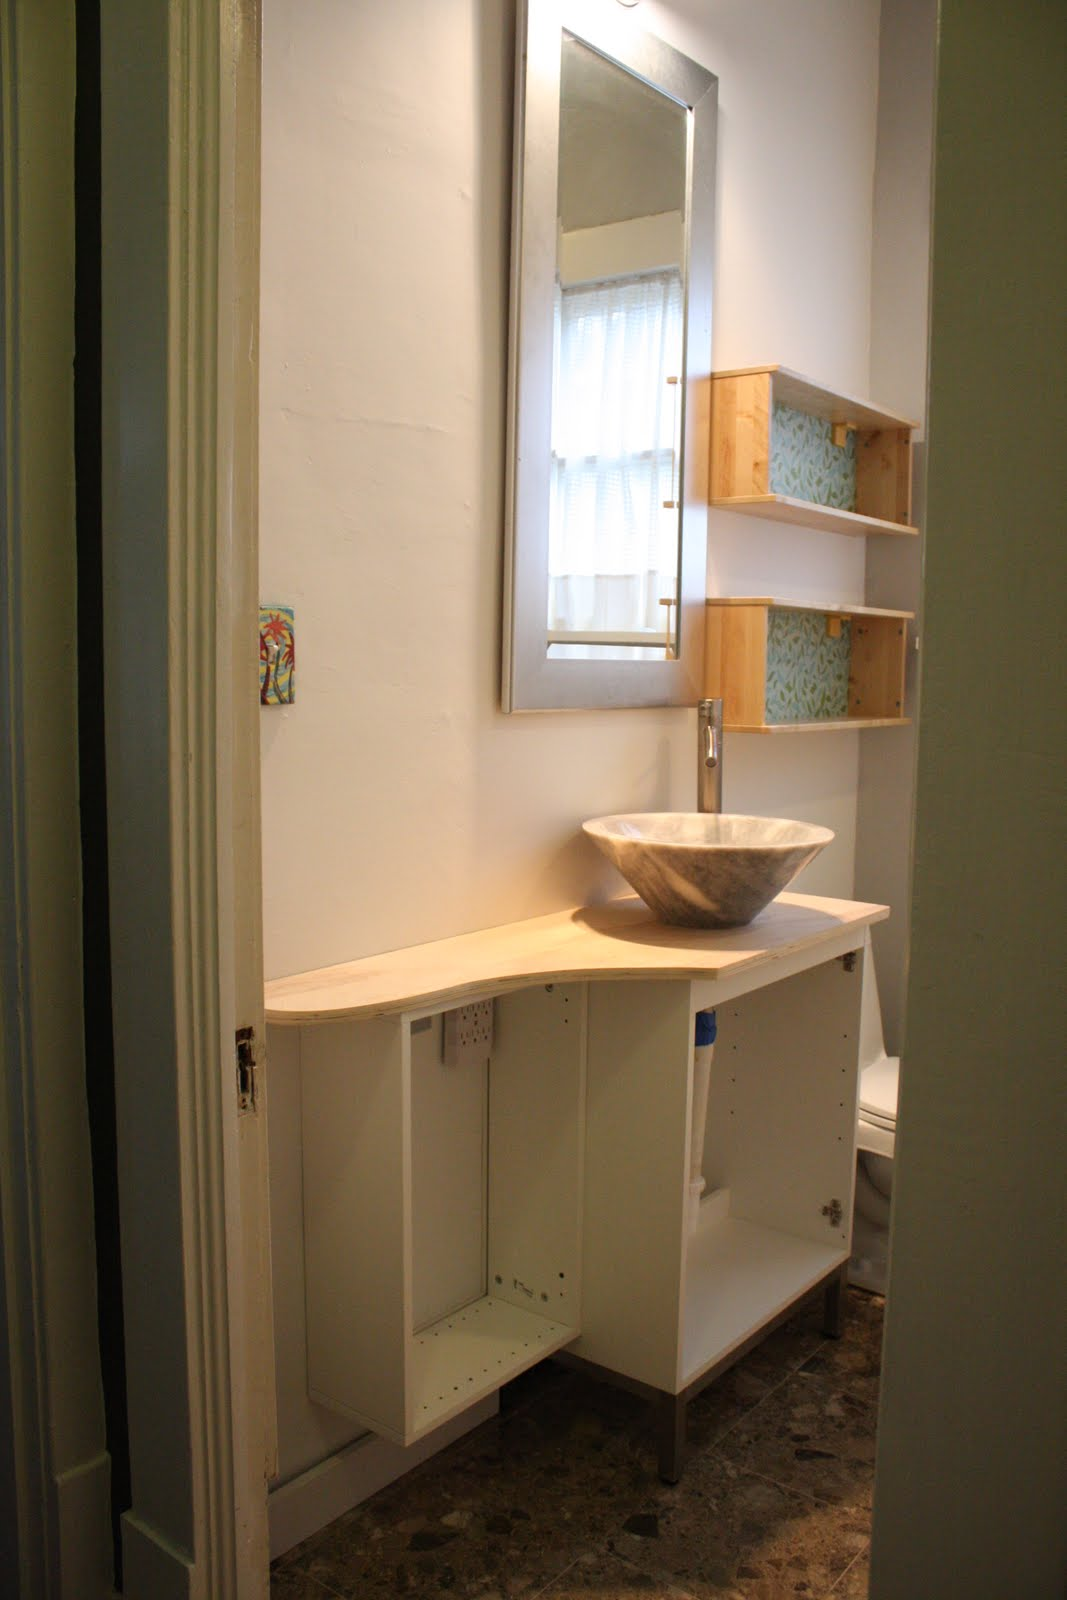 ikea hanging chairs chair with backrest lillangen bathroom remodel - hackers